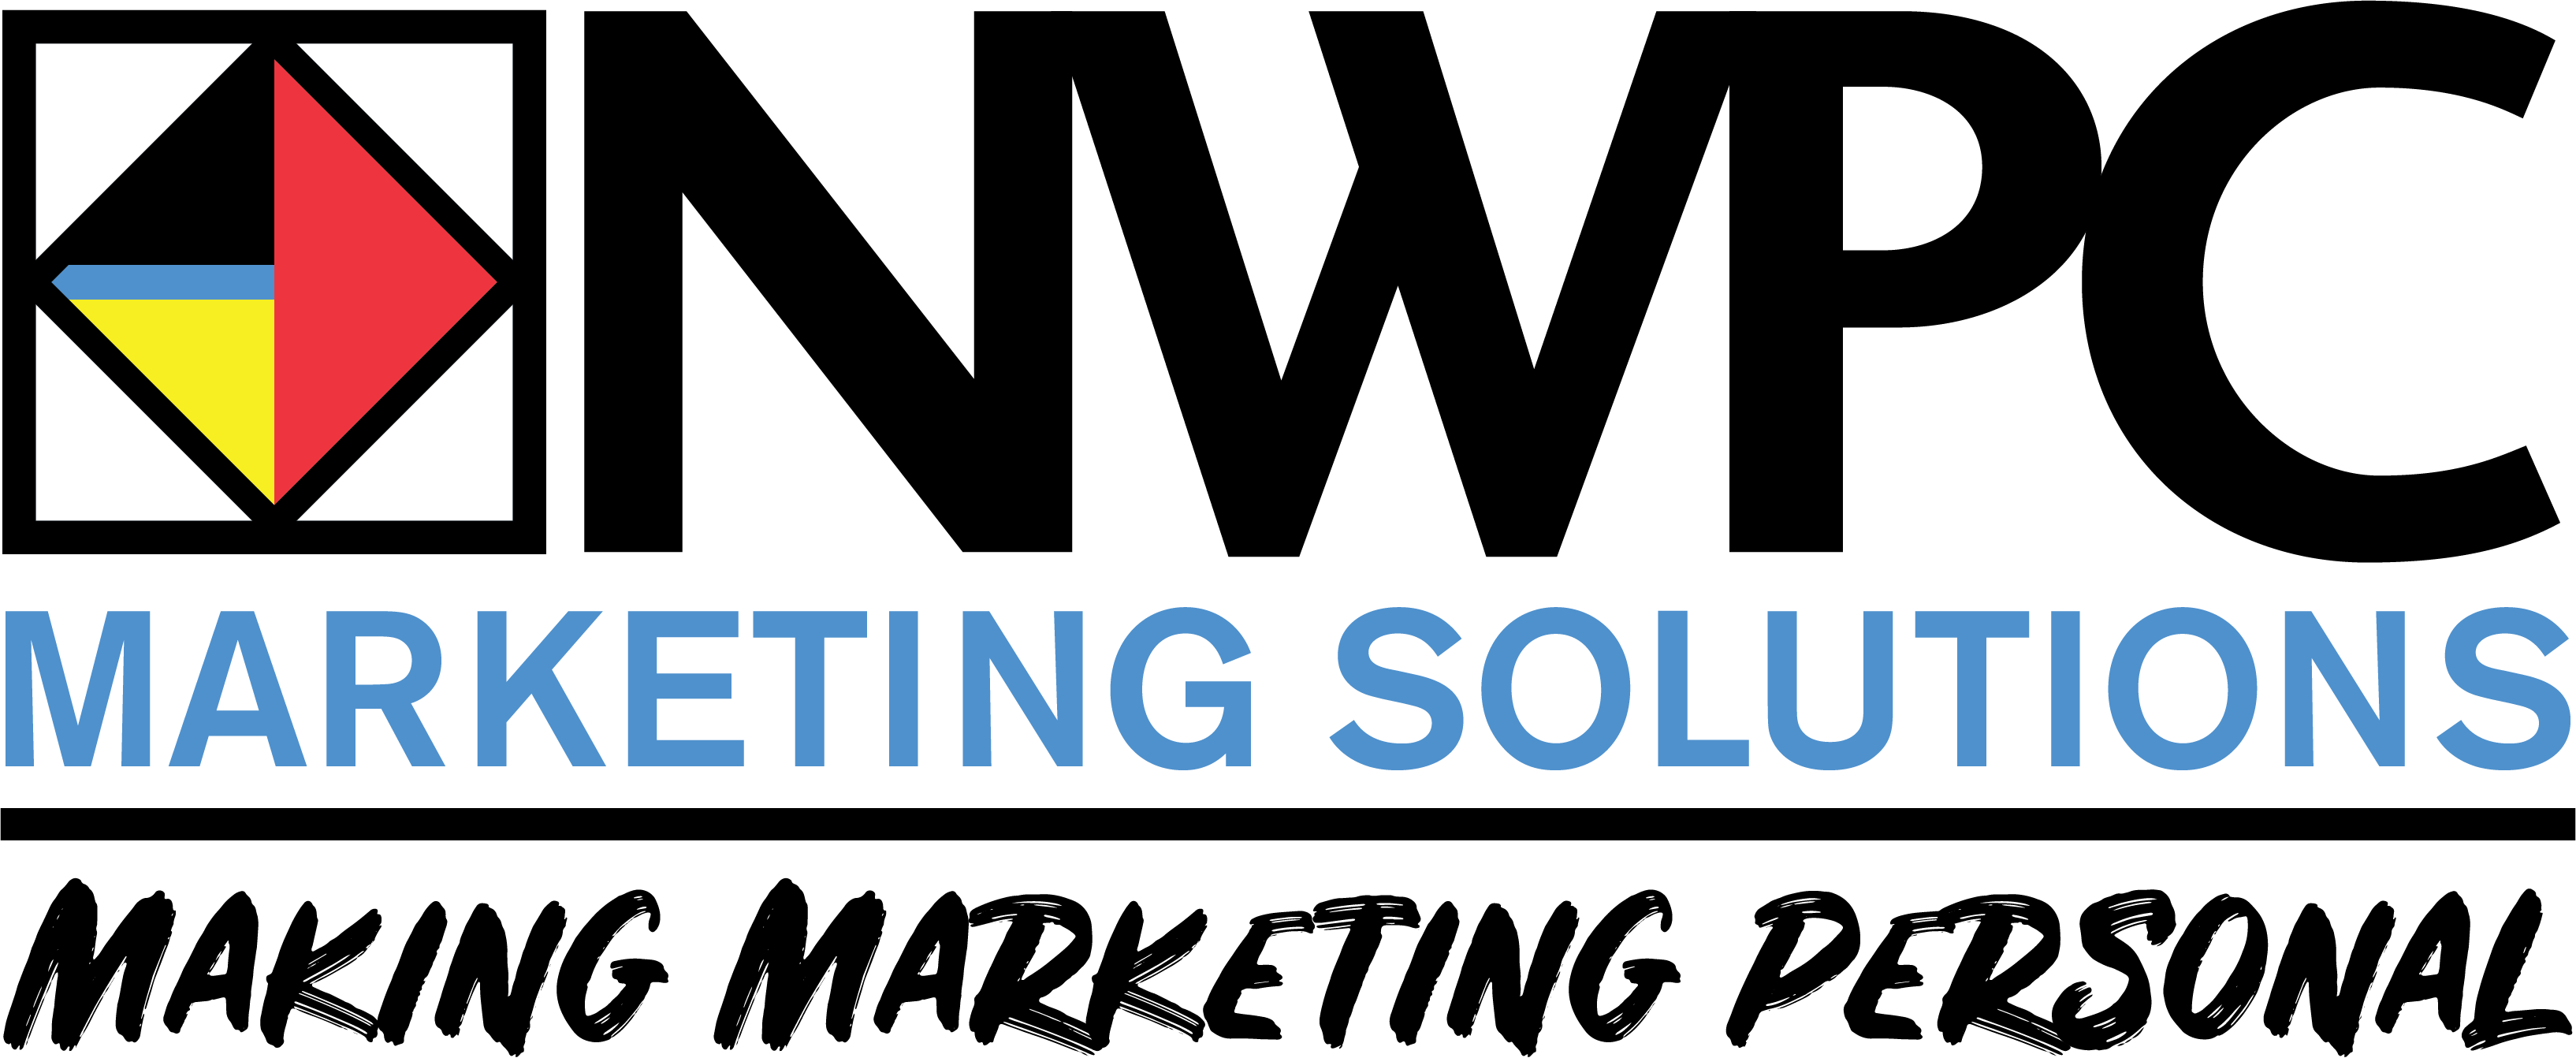 NWPC Marketing Solutions Making Marketi